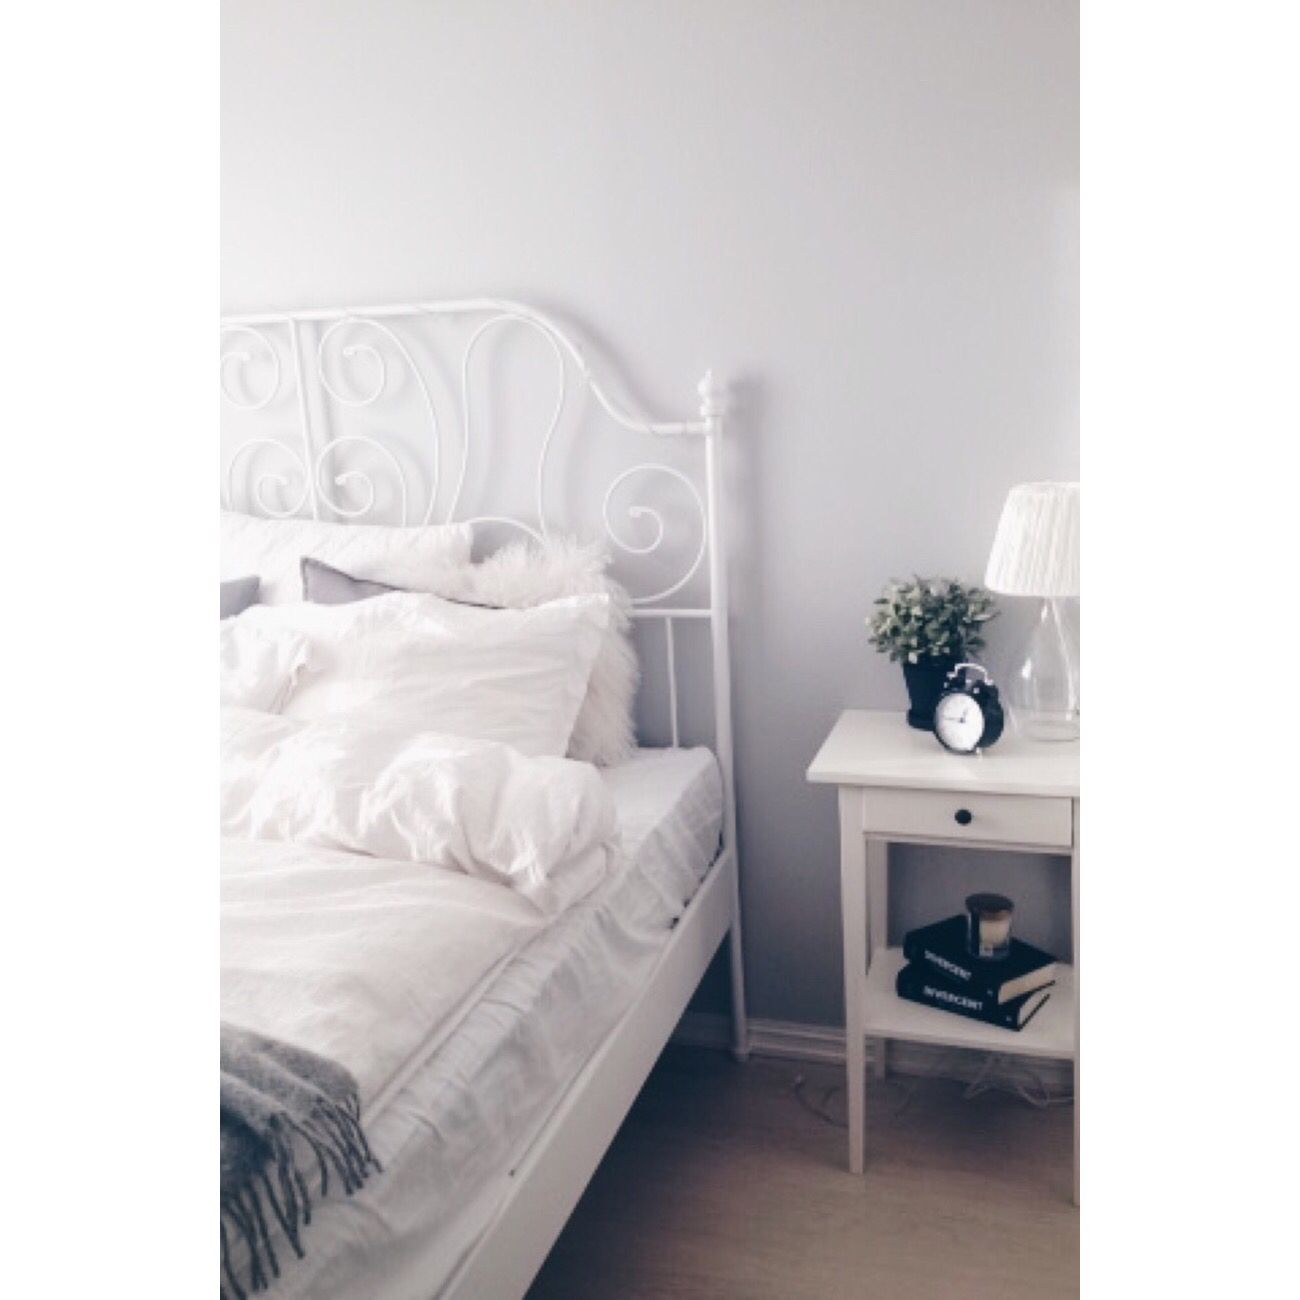 Room inspiration tumblr leirvik bed ikea bedroom for Zimmer inspiration